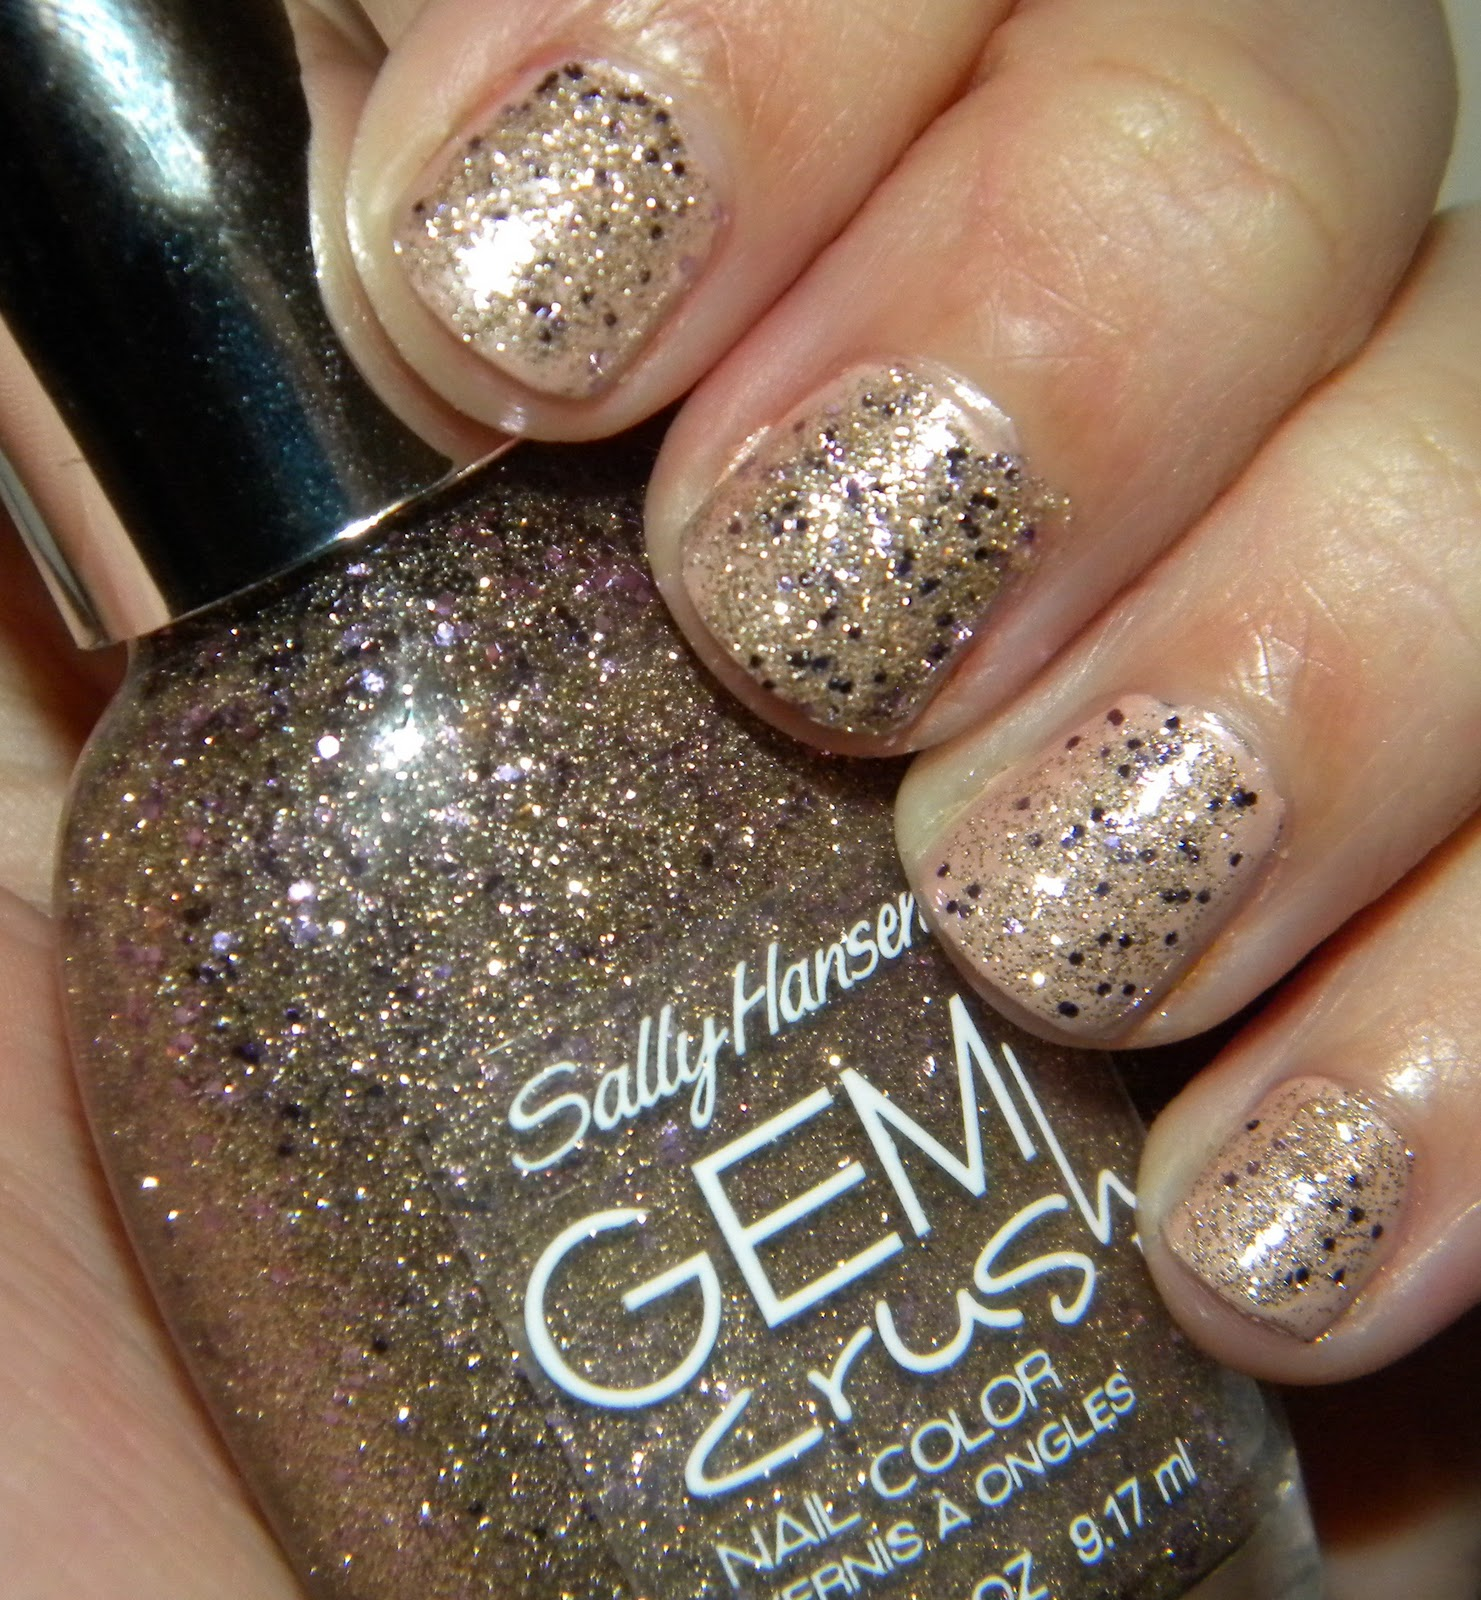 NOTD - Sally Hansen Gem Crush Nail Color in Big Money